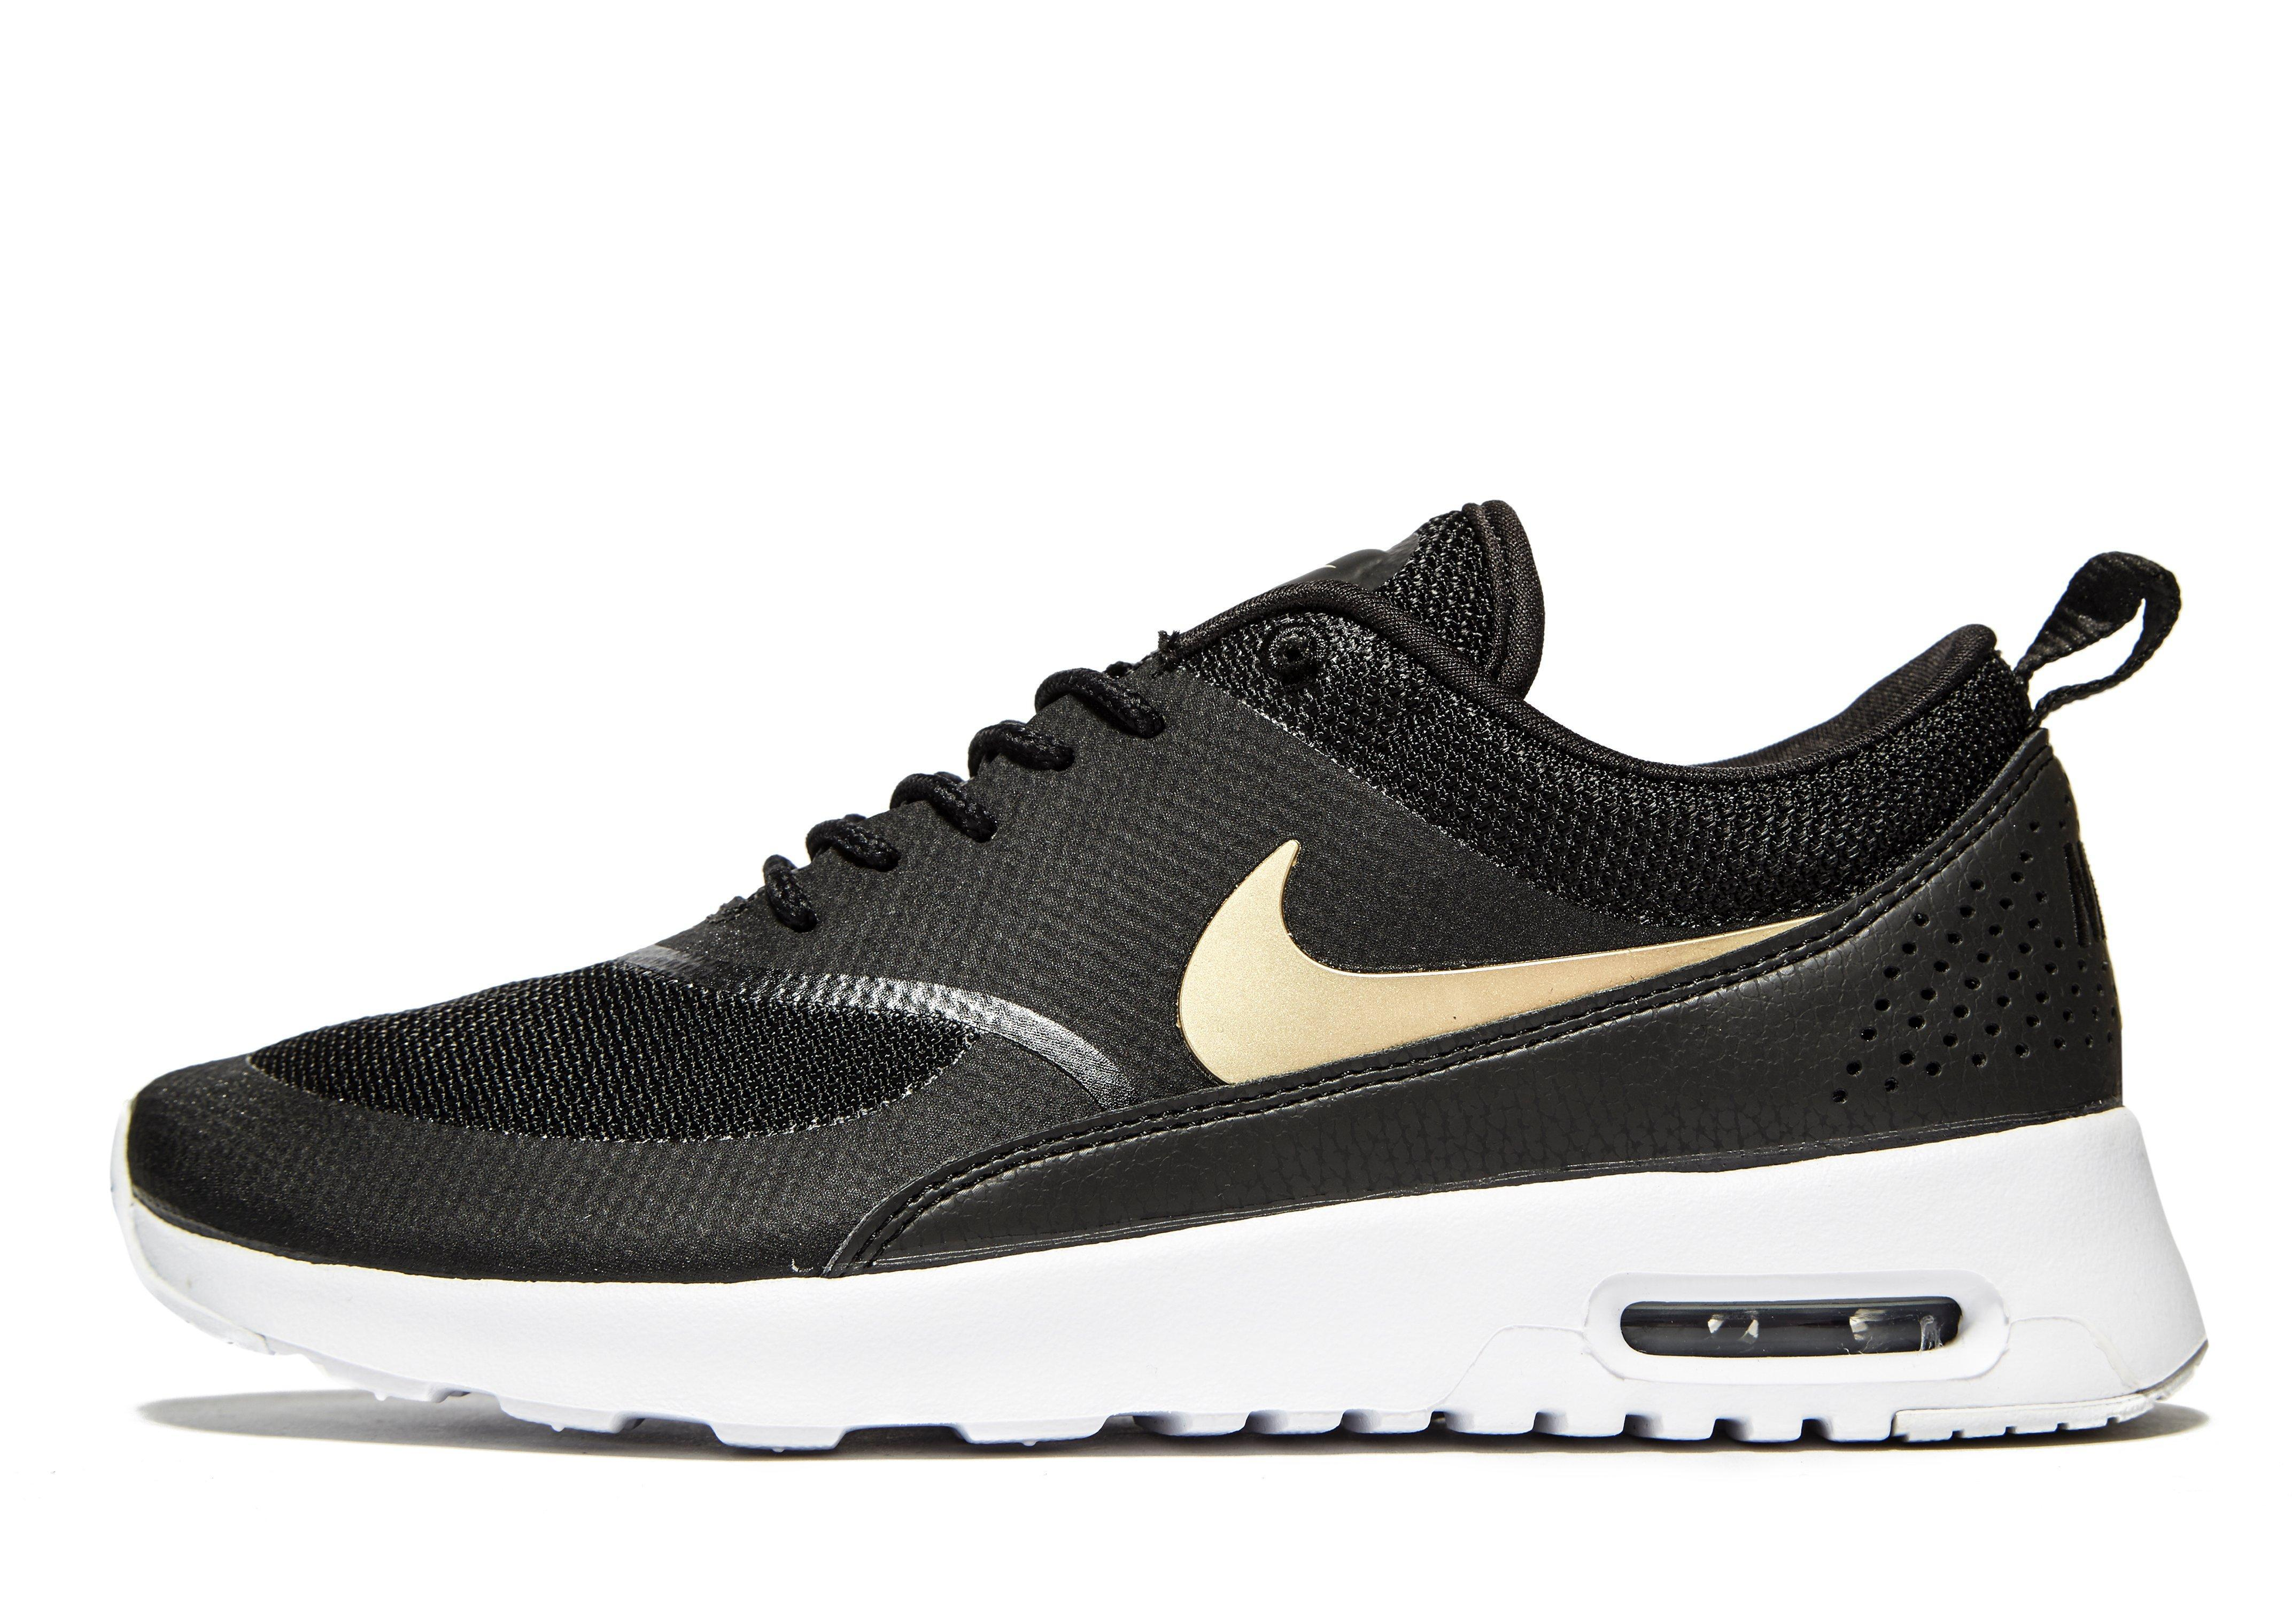 lyst nike air max thea in black for men. Black Bedroom Furniture Sets. Home Design Ideas